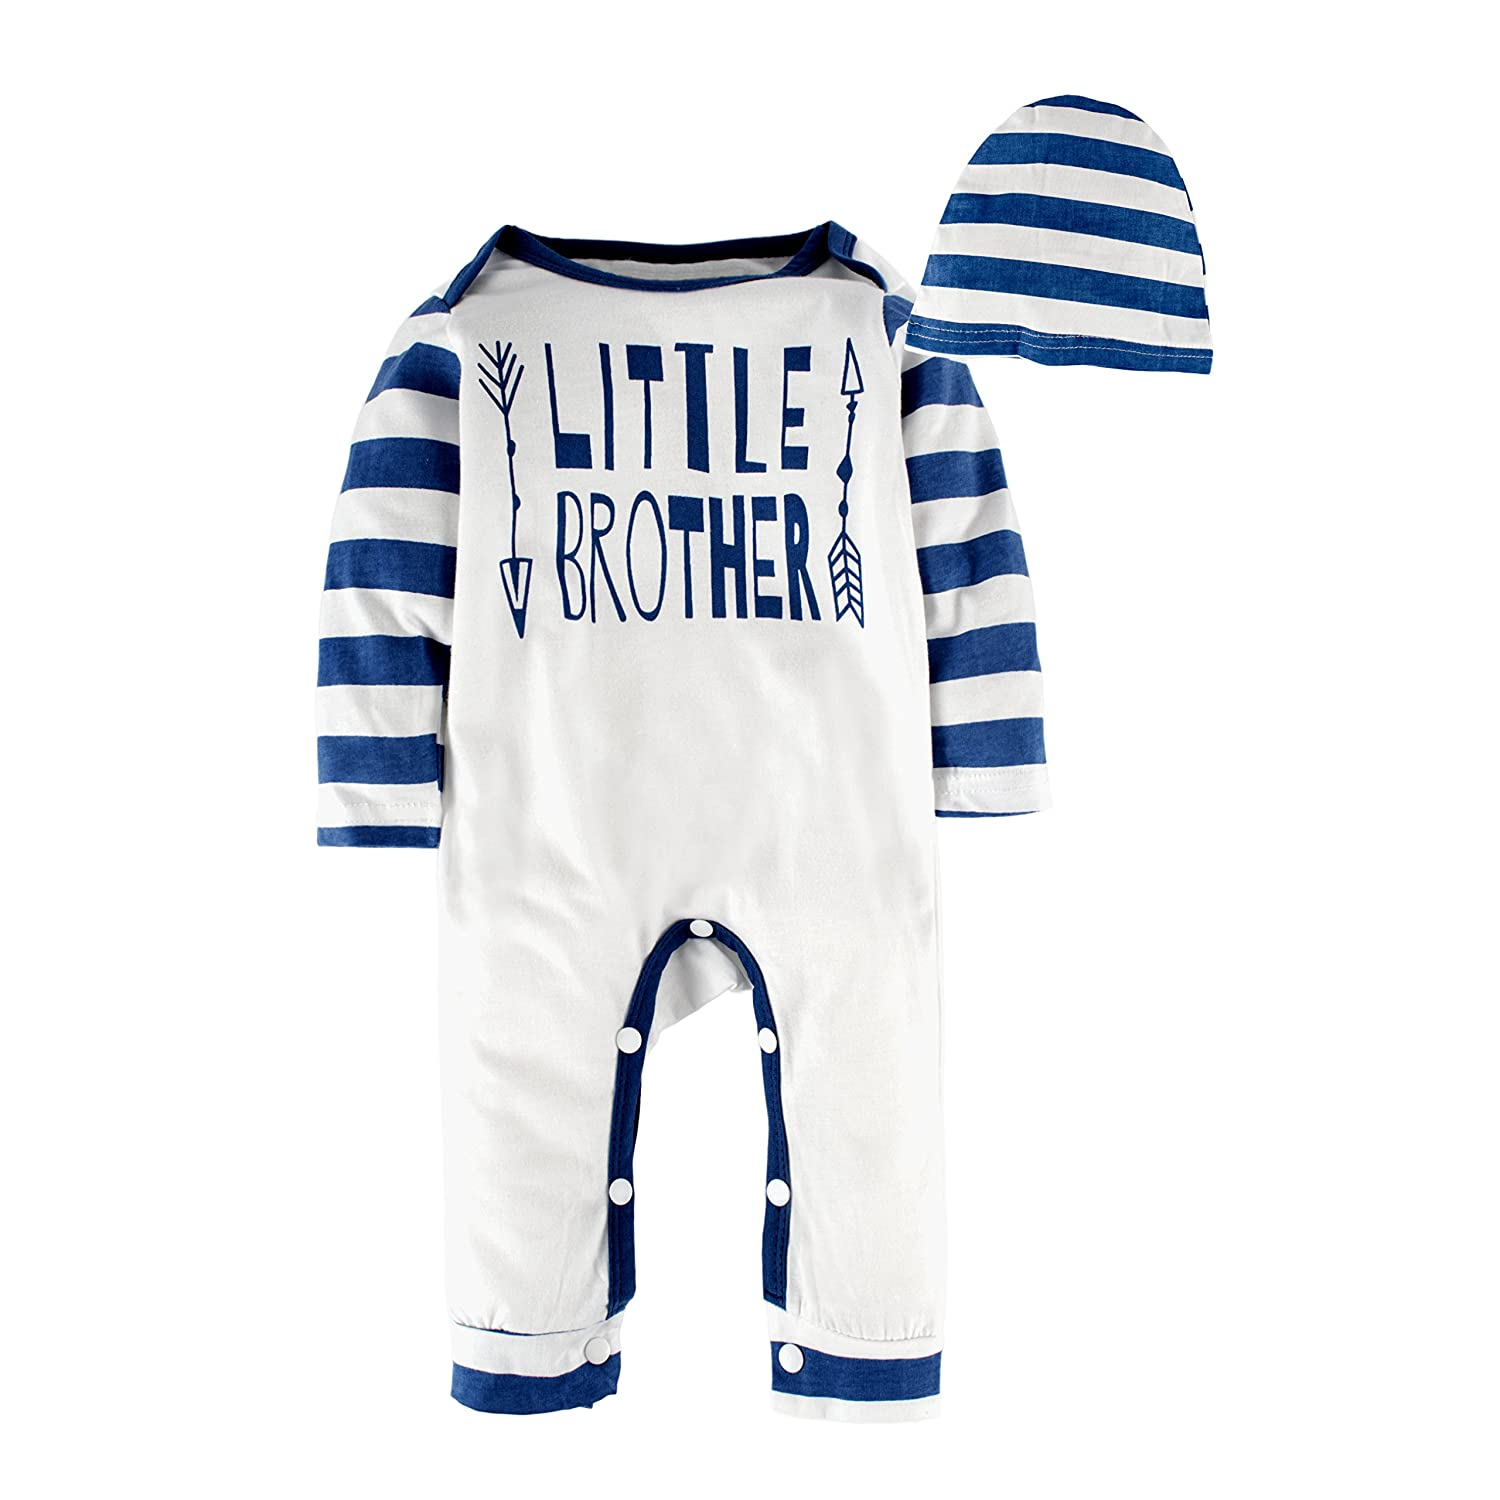 BIG ELEPHANT Baby Boys 2 Pieces Long Sleeve Romper Pajama with Hat O27,White and Blue,0-3 Months